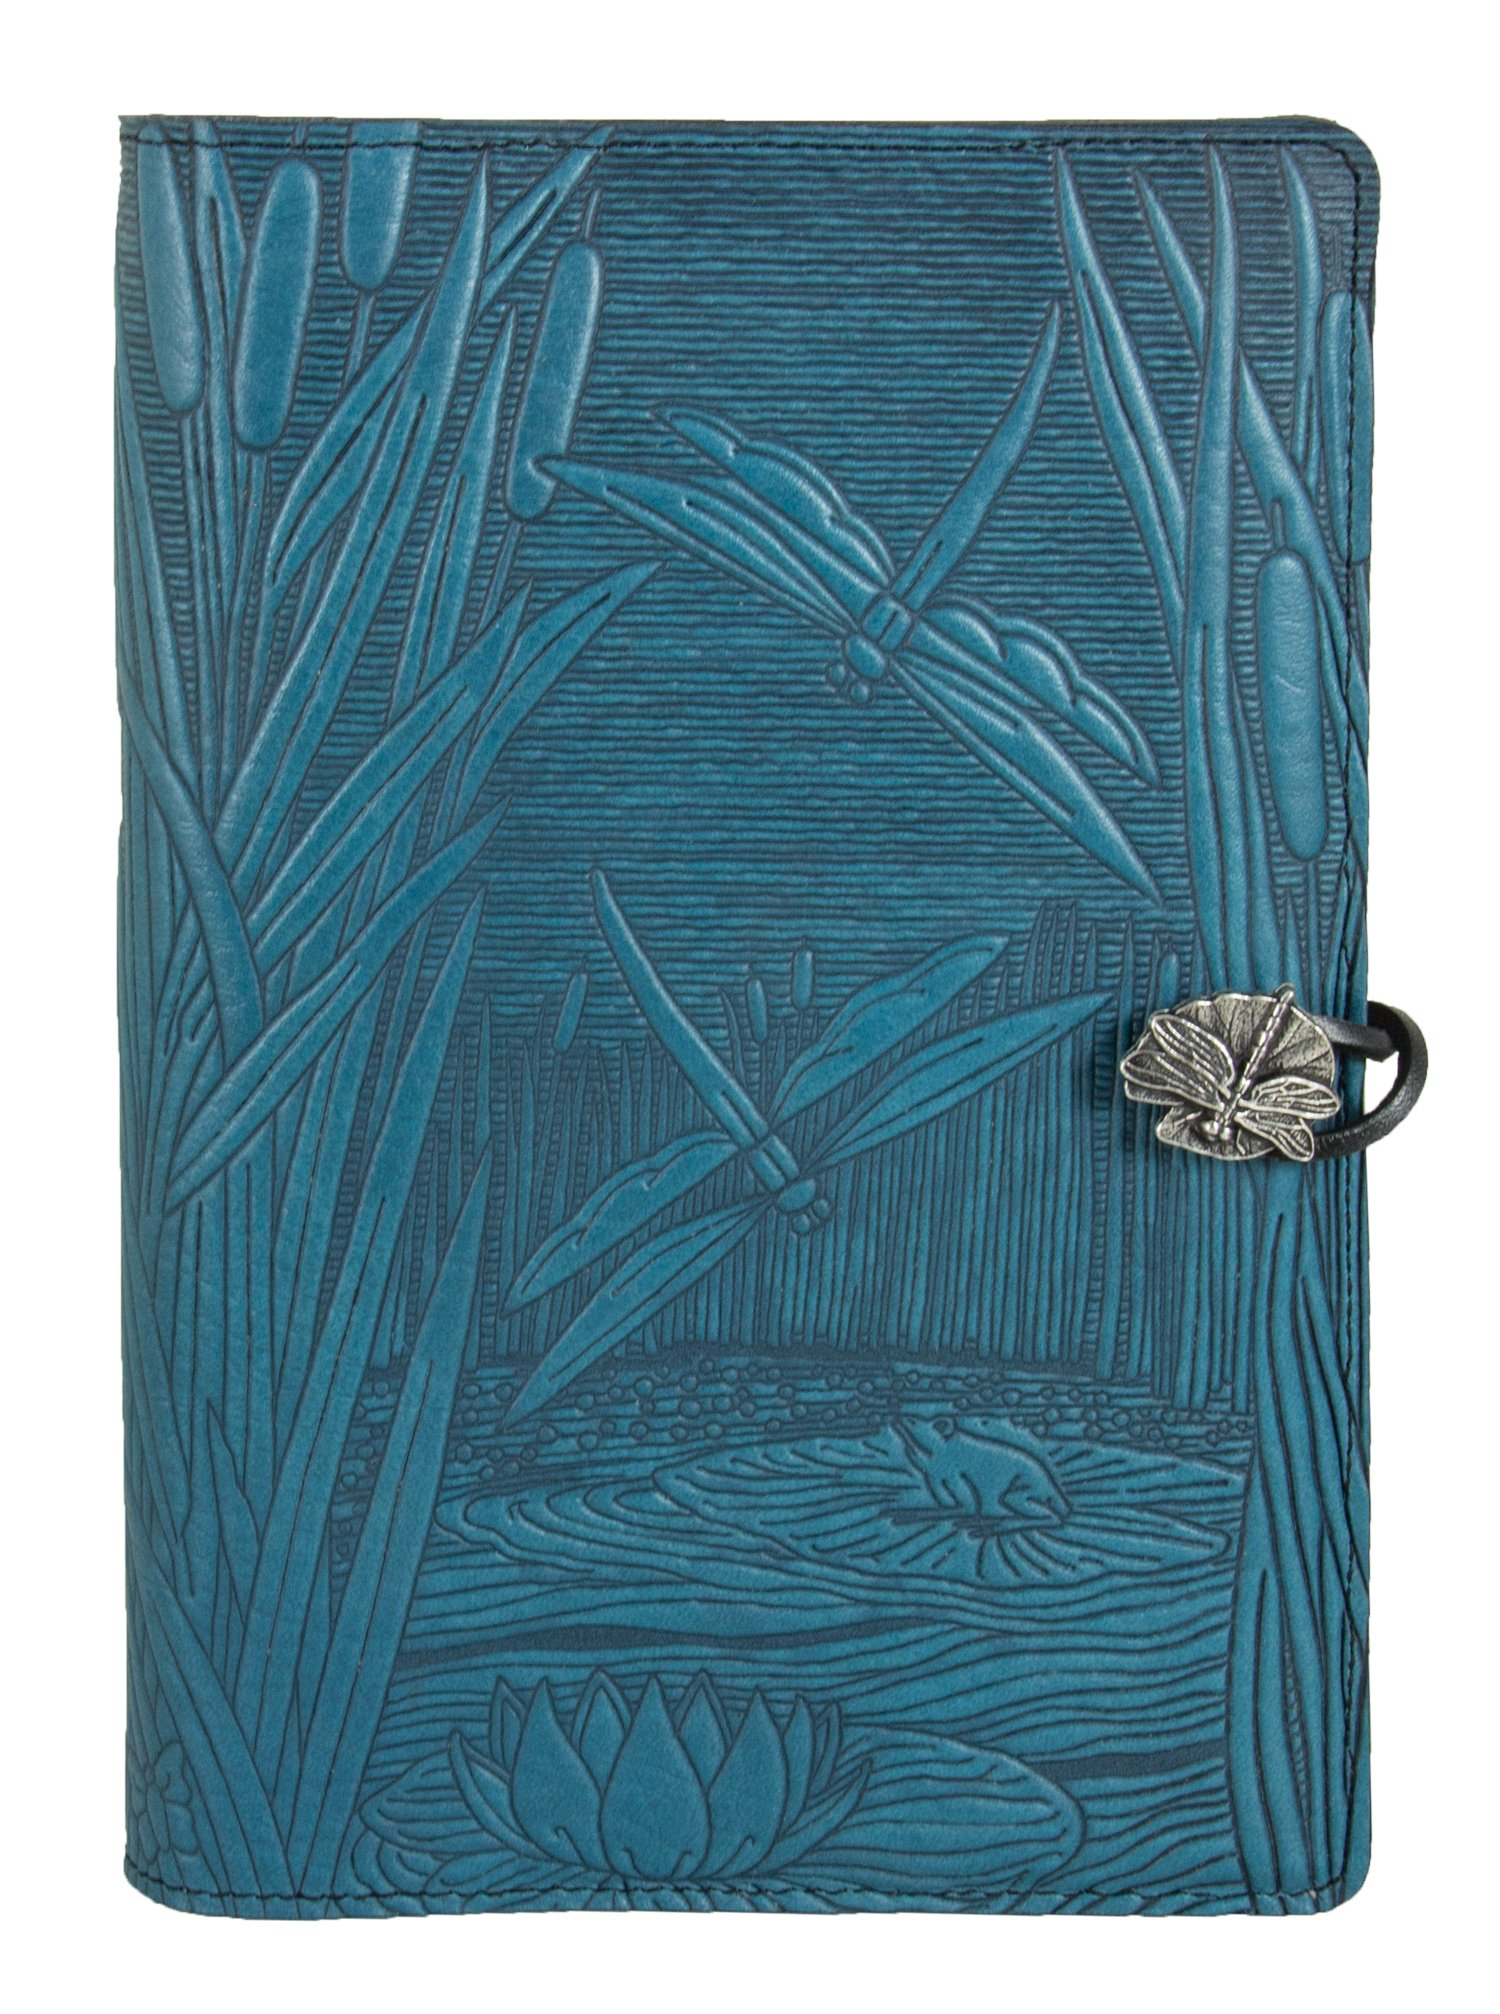 Genuine Leather Refillable Journal Cover + Hardbound Blank Insert - 6x9 Inches - Dragonfly Pond, Sky Blue With Pewter Button - Made in the USA by Oberon Design by Oberon Design (Image #2)